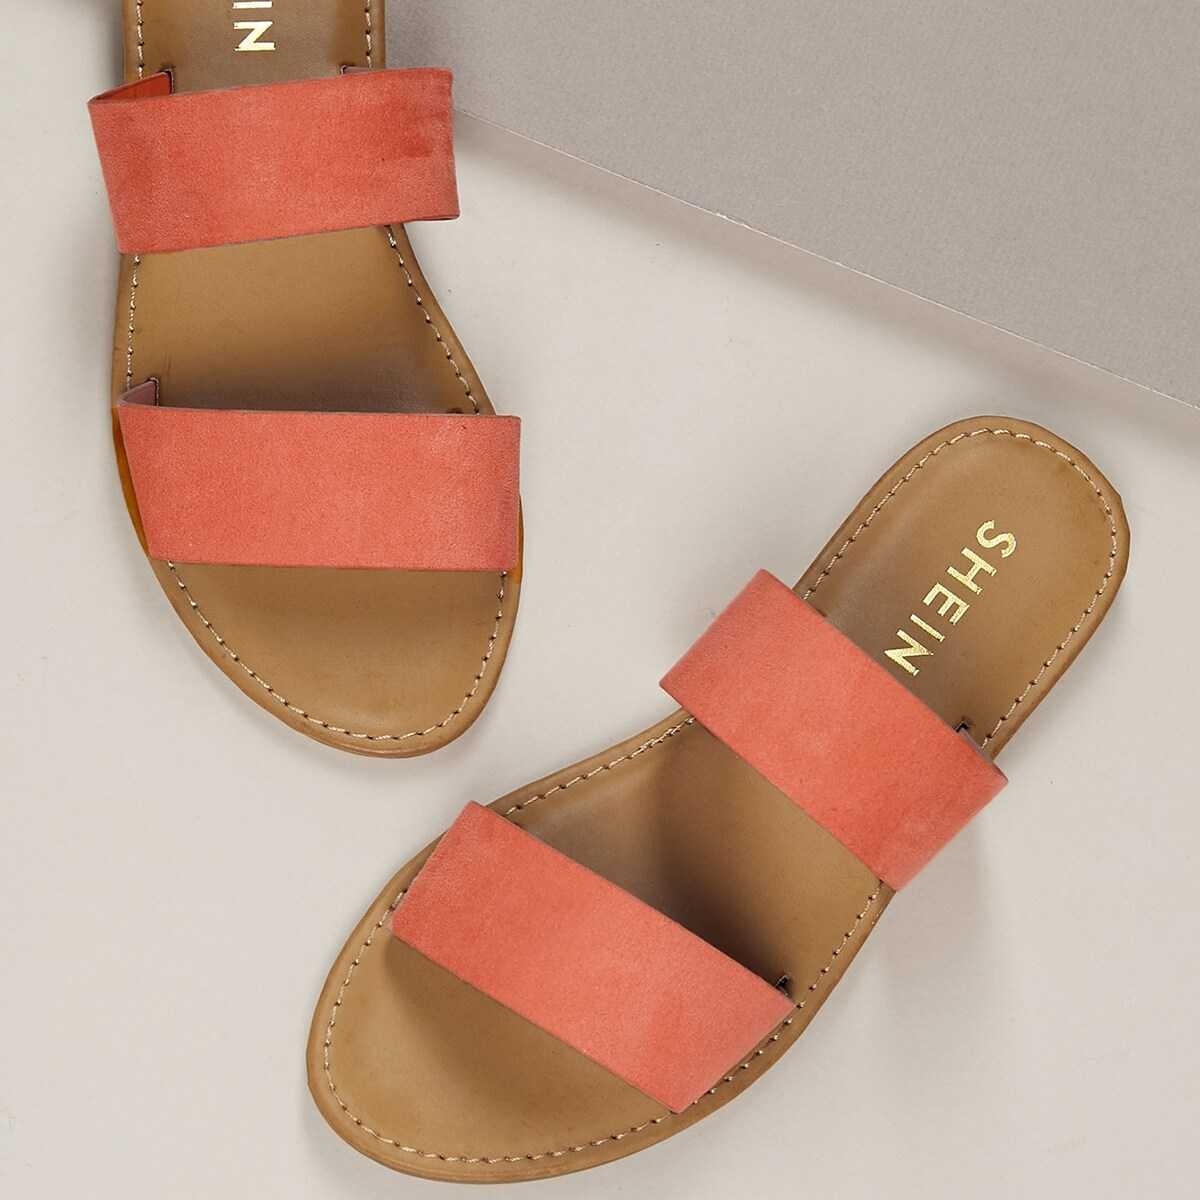 Twin Bands Open Toe Flat Slide Sandals in Multicolor by ROMWE on GOOFASH